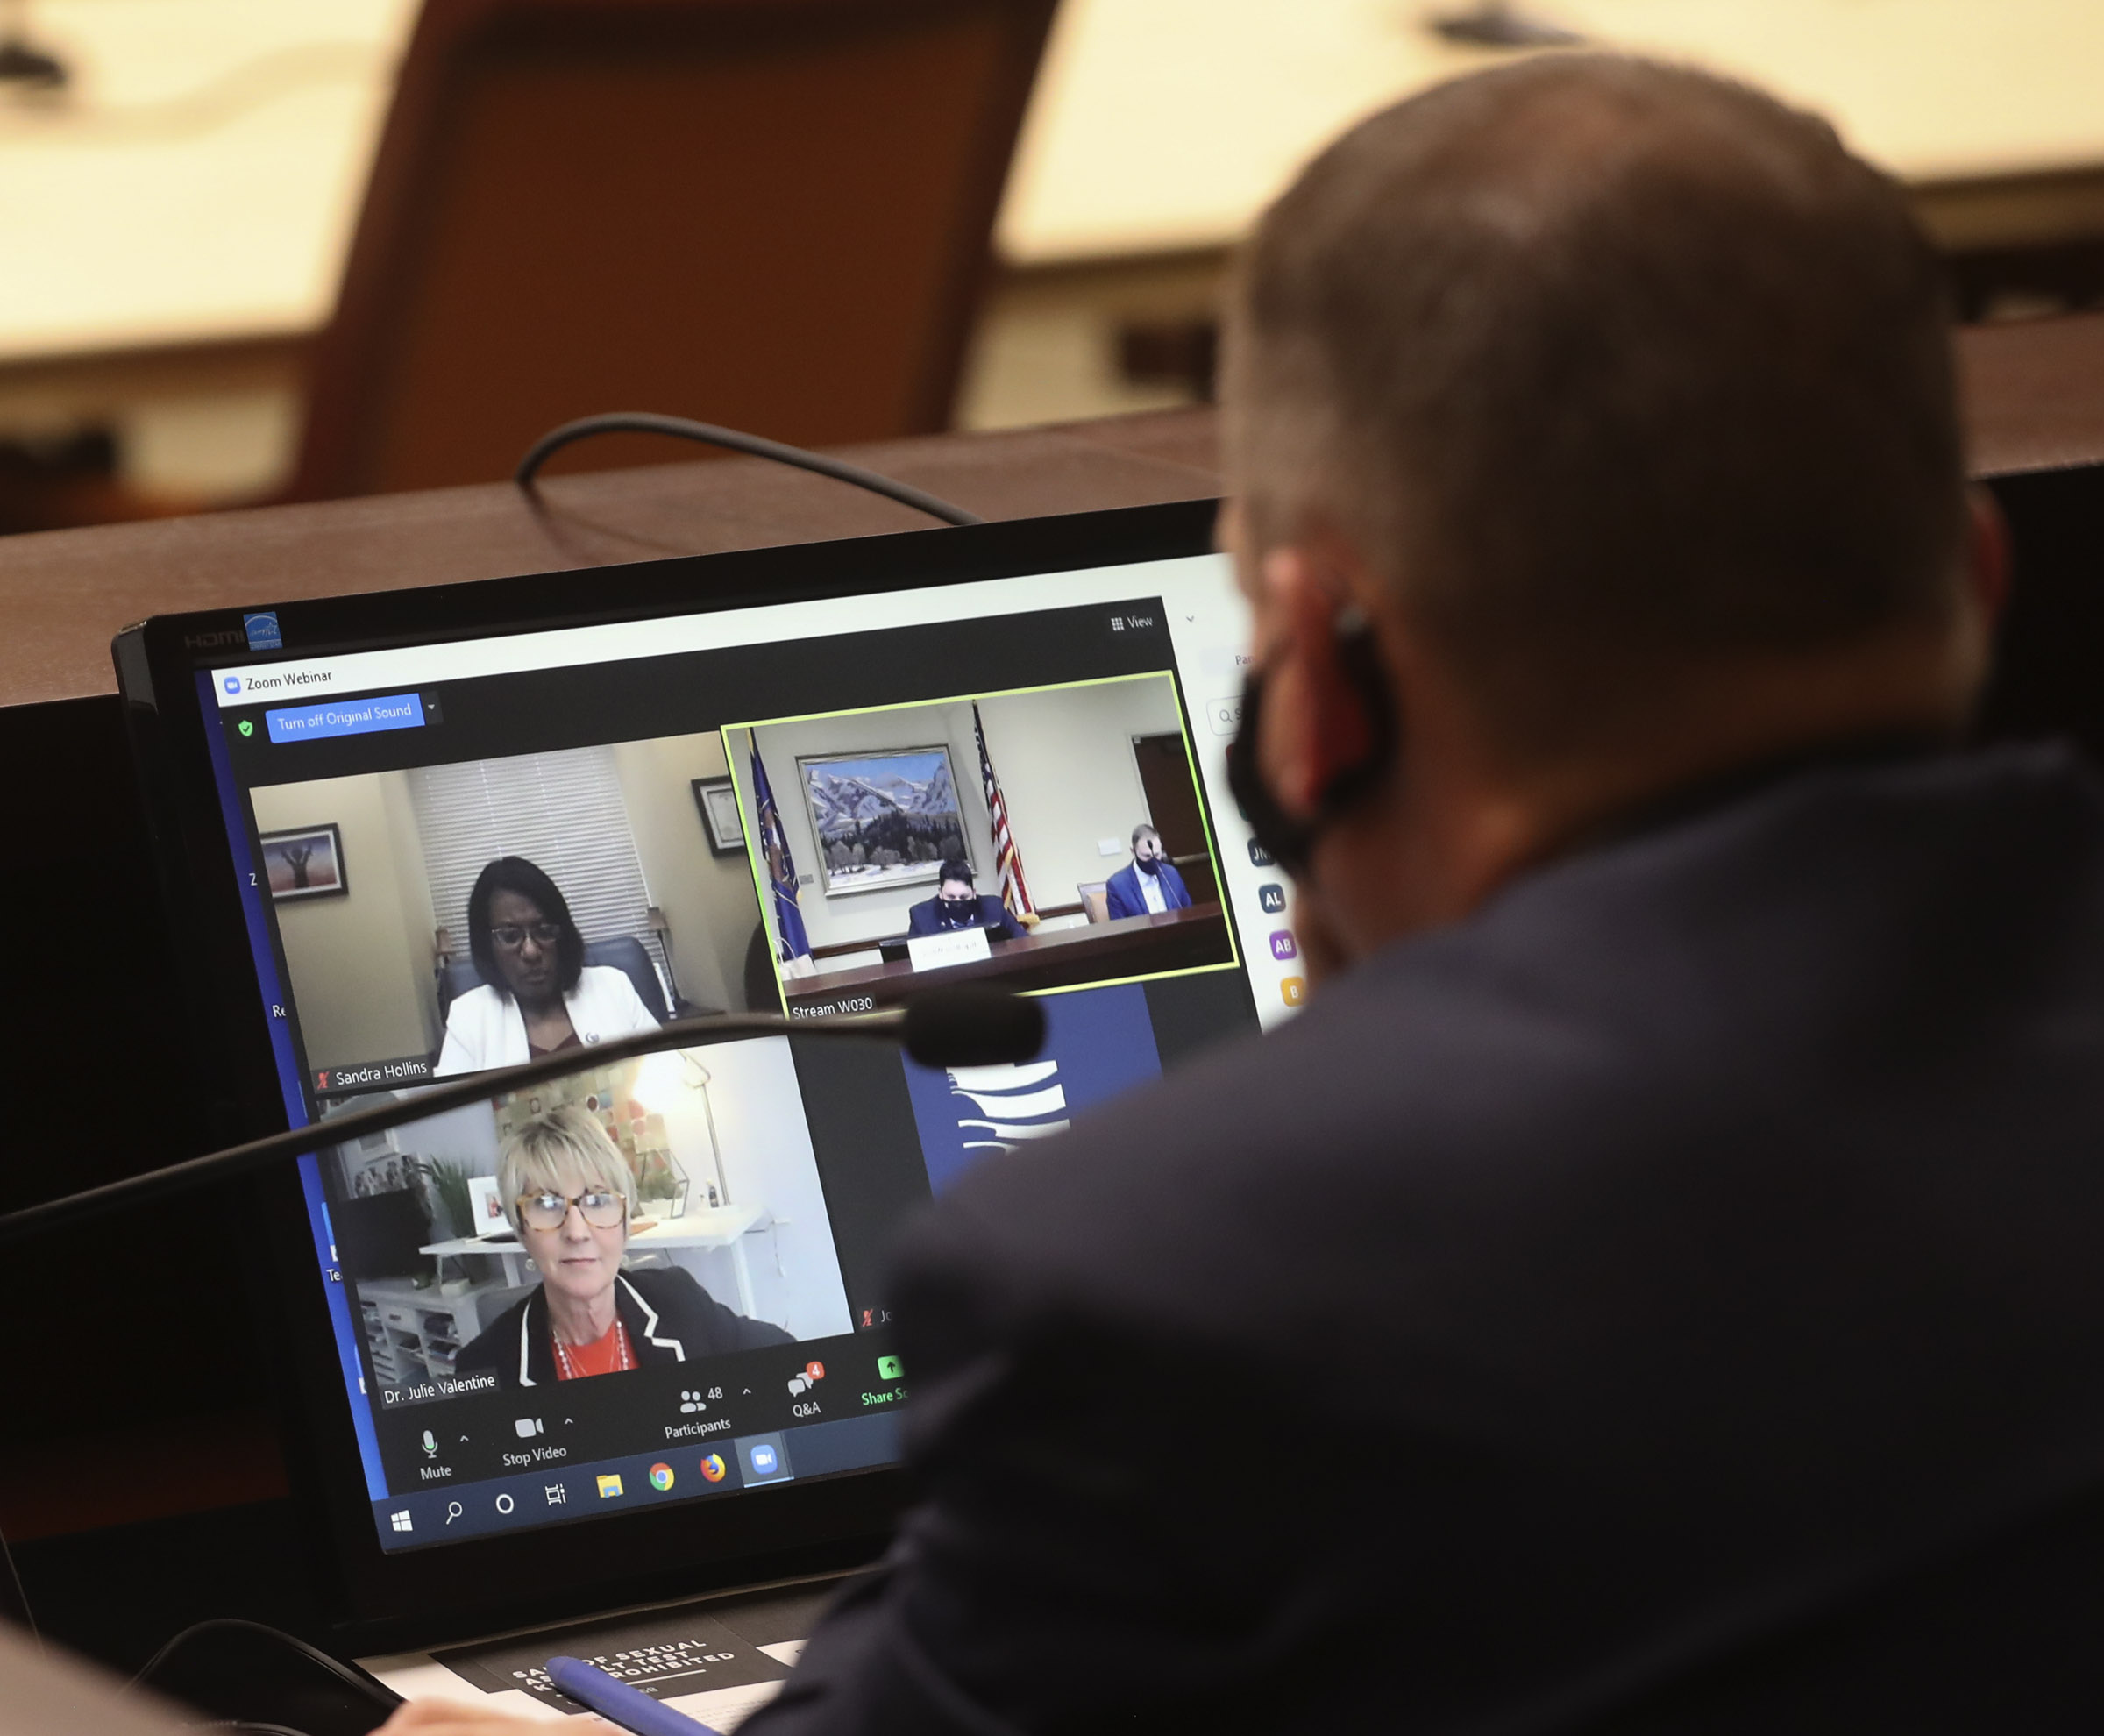 Rep. Paul Ray, R-Clearfield, listens to Dr. Julie Valentine, a BYU professor and sexual assault nurse examiner, bottom left, as she speaks on a Zoom call during a House Law Enforcement and Criminal Justice Standing Committee in the House Building at the Capitol complex in Salt Lake City on Friday, Jan. 22, 2021. Valentine discussed HB0168, which seeks to prohibit over-the-counter sexual assault evidence kits.